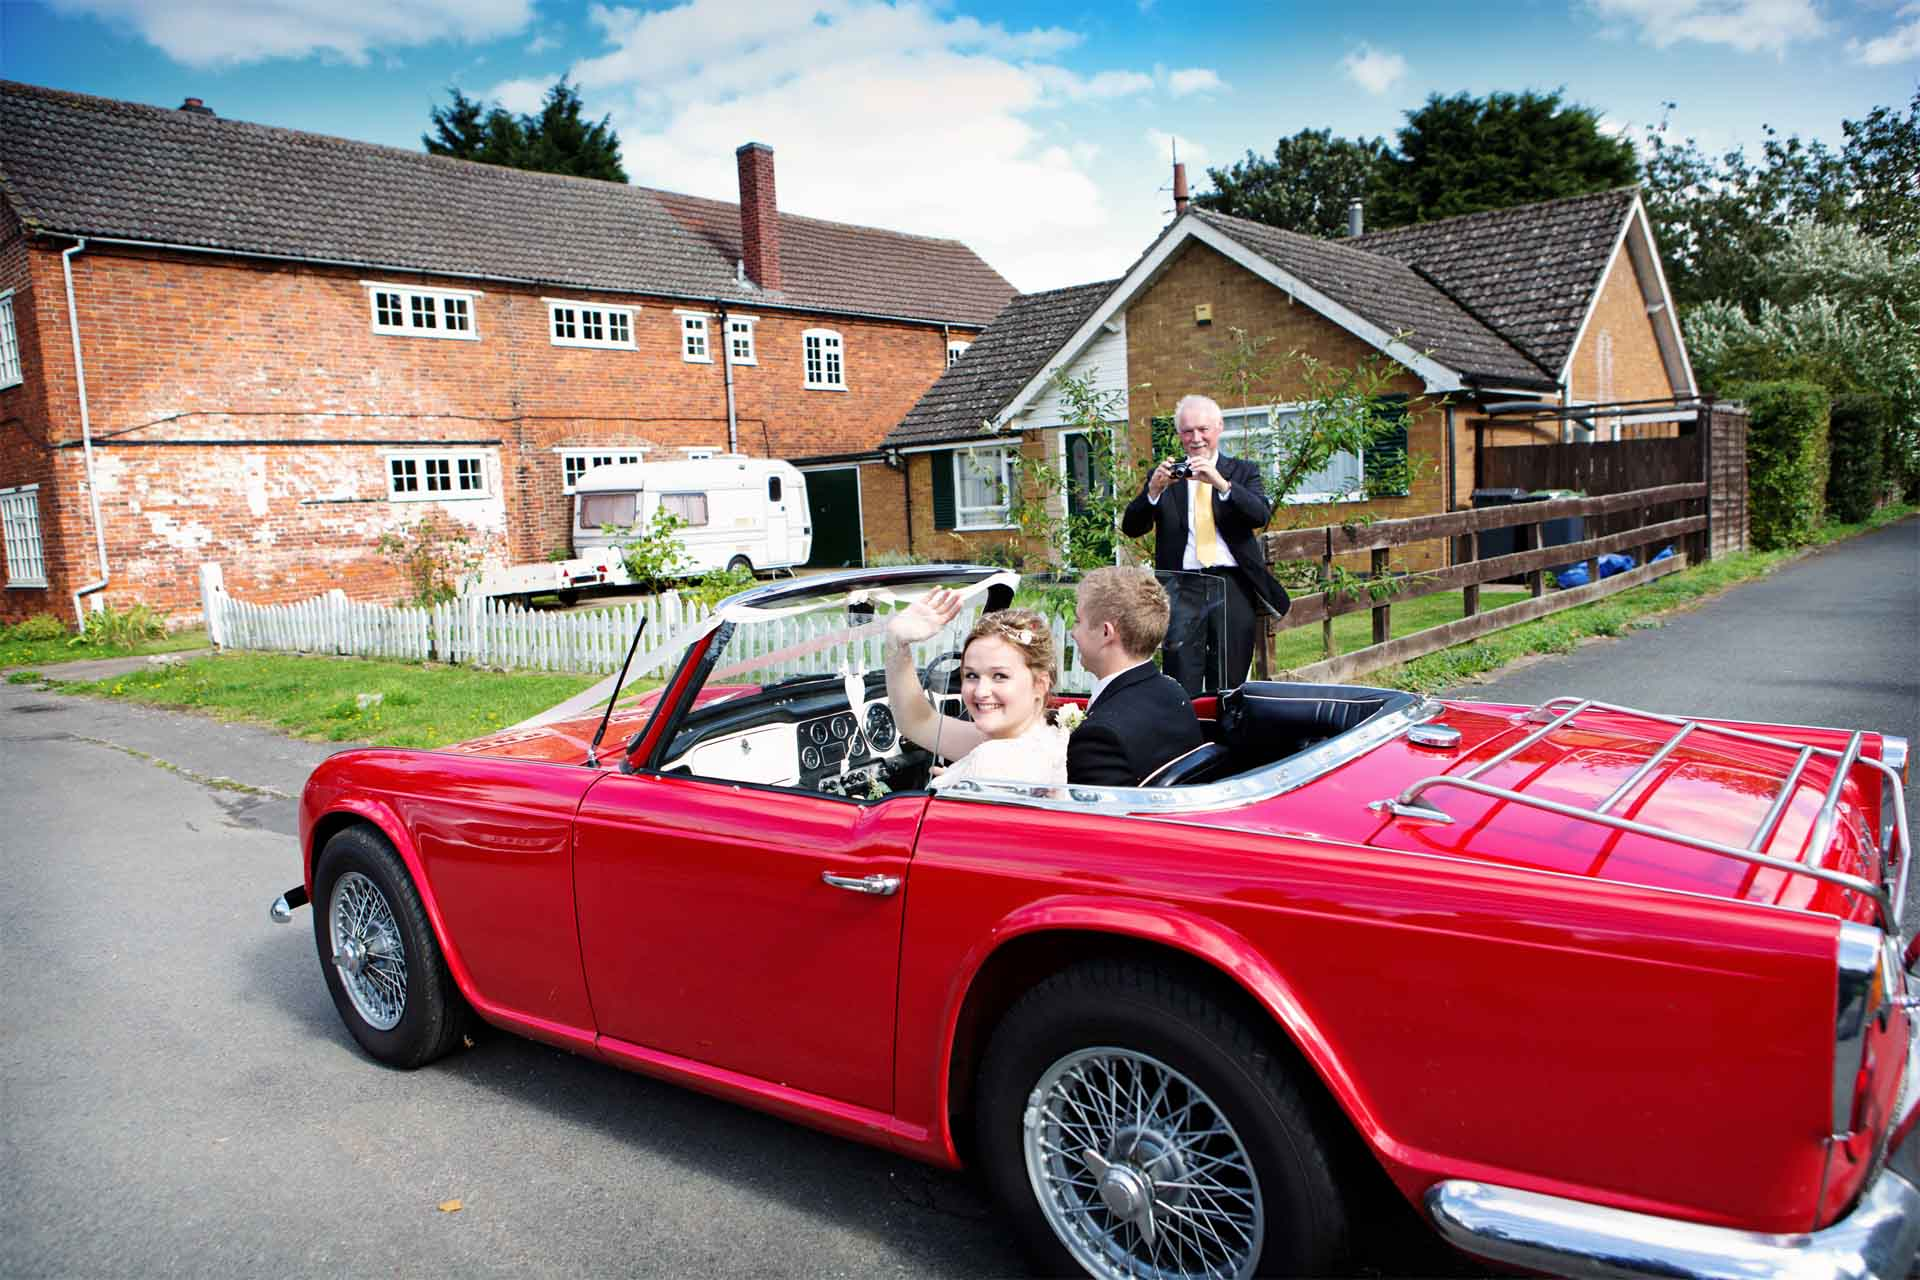 bride and groom leaving church in red car